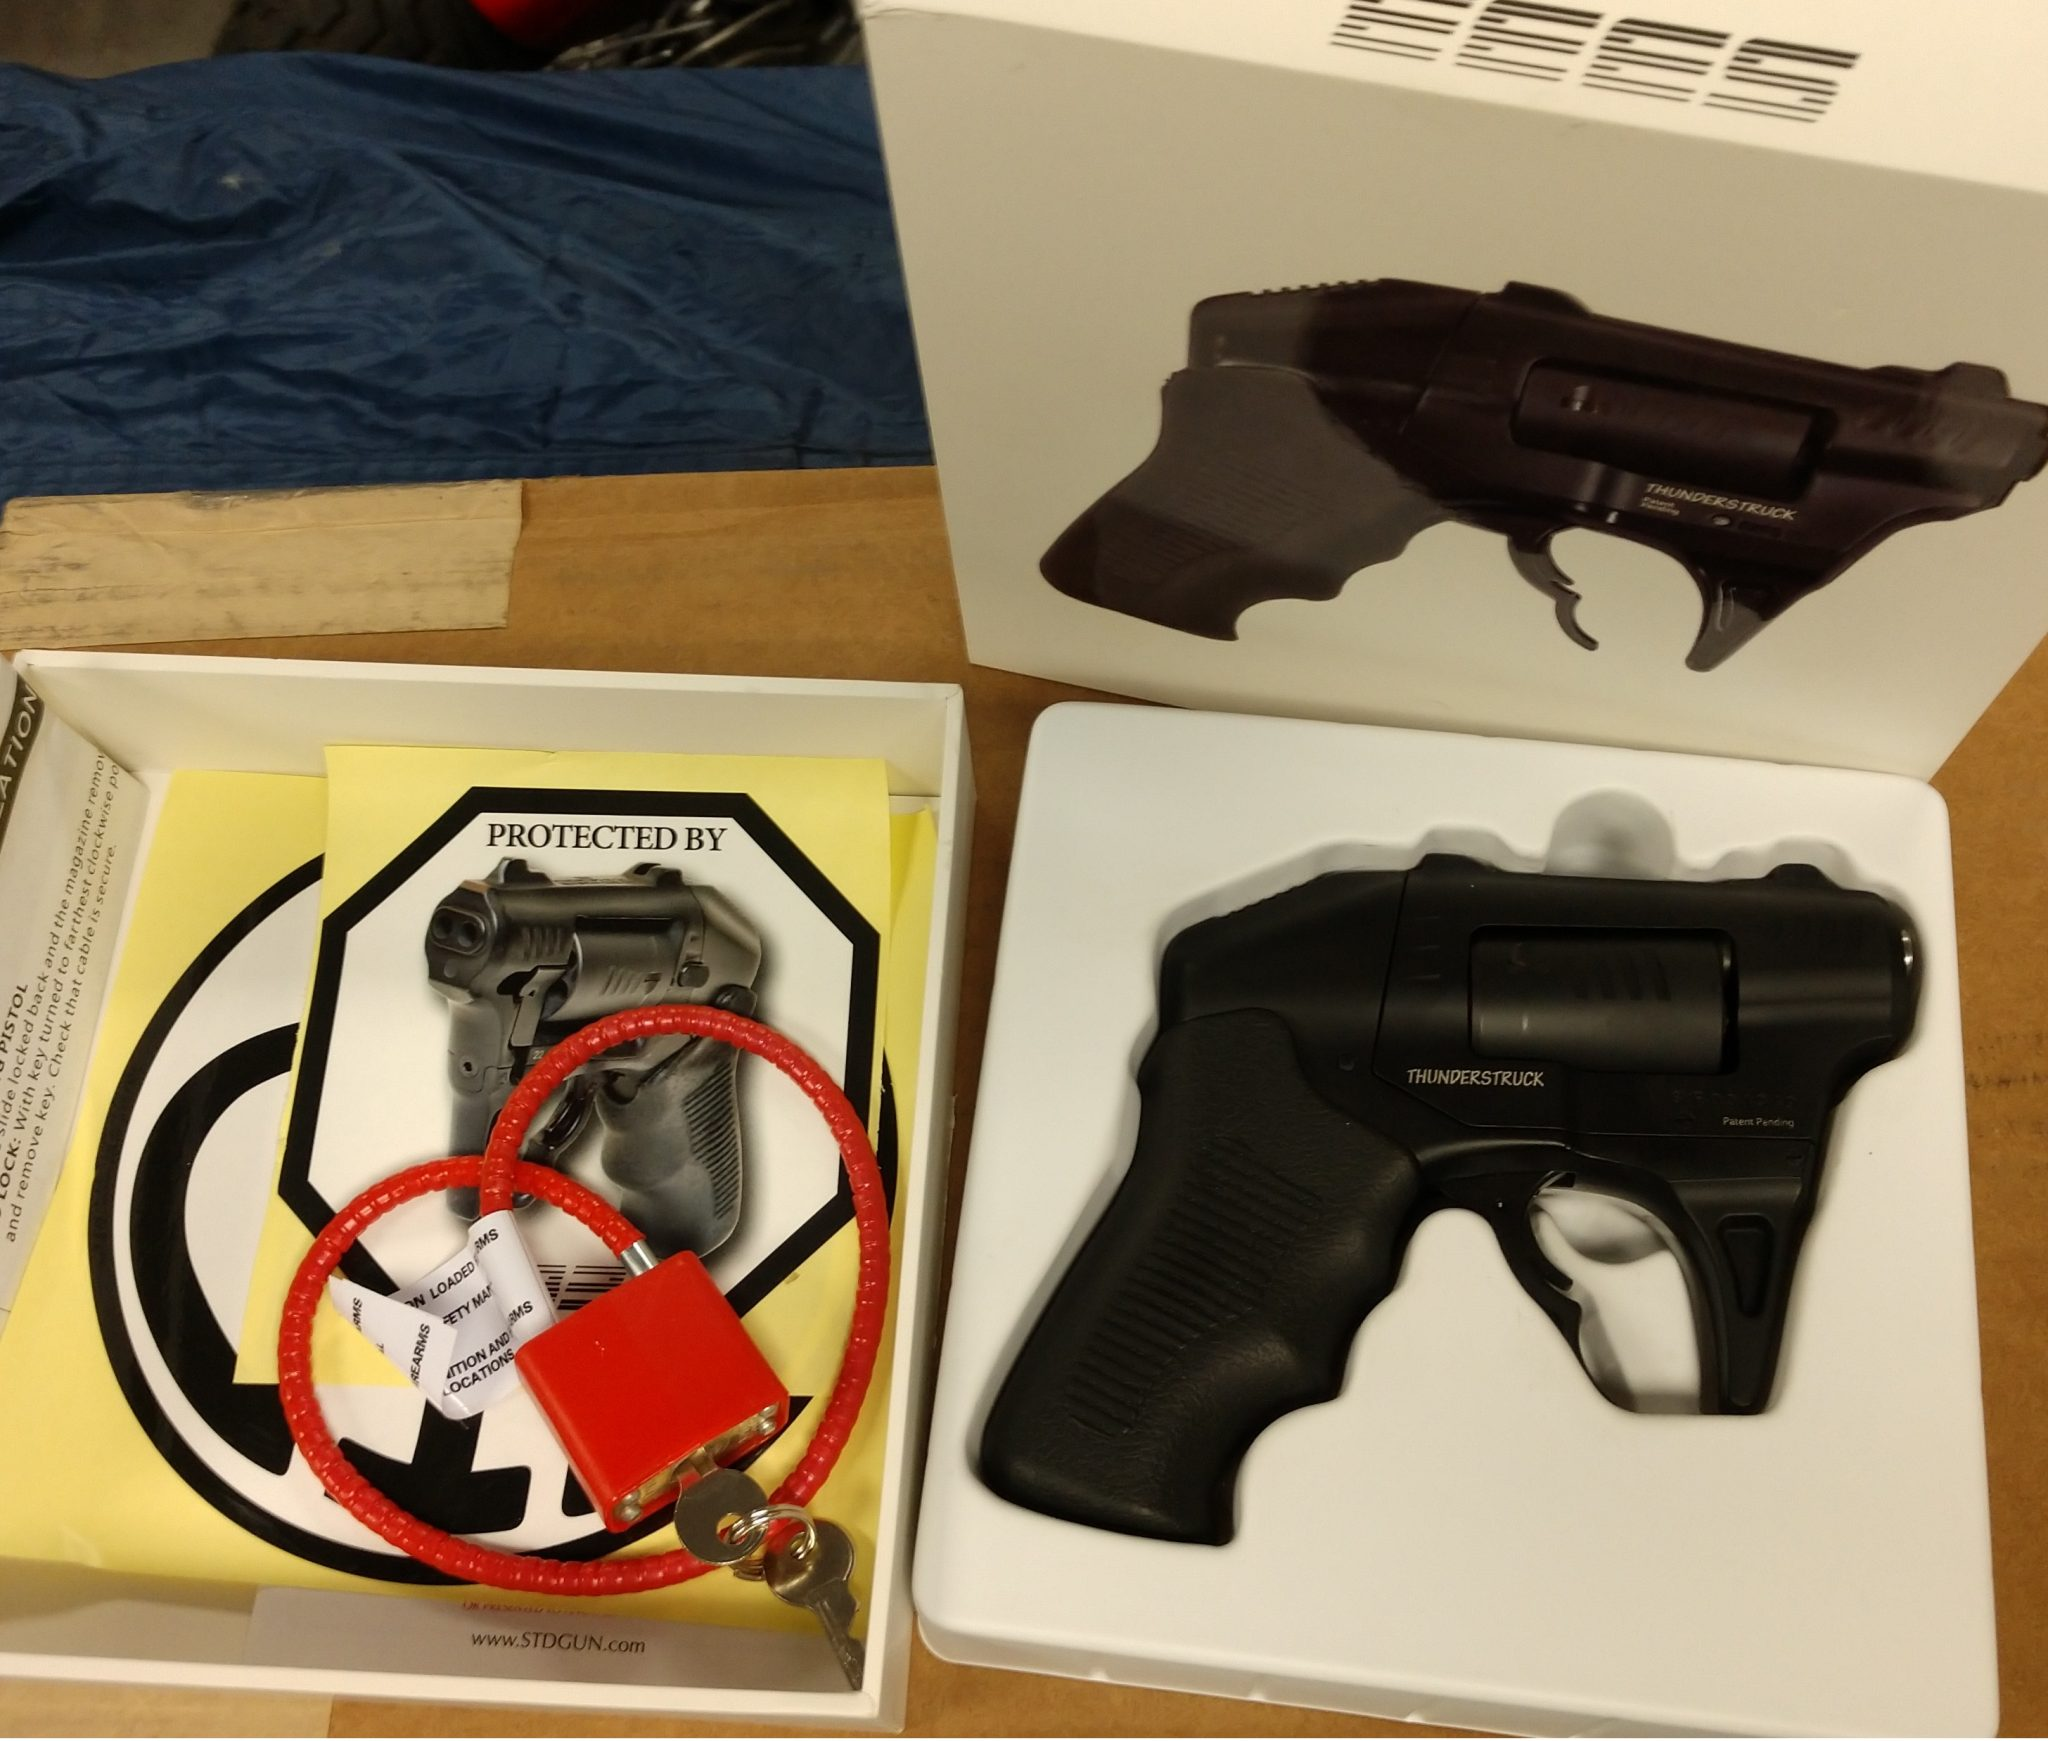 Thuderstruck S333 package, fired 4 rounds, holster is new, comes with original box and goodies. $450